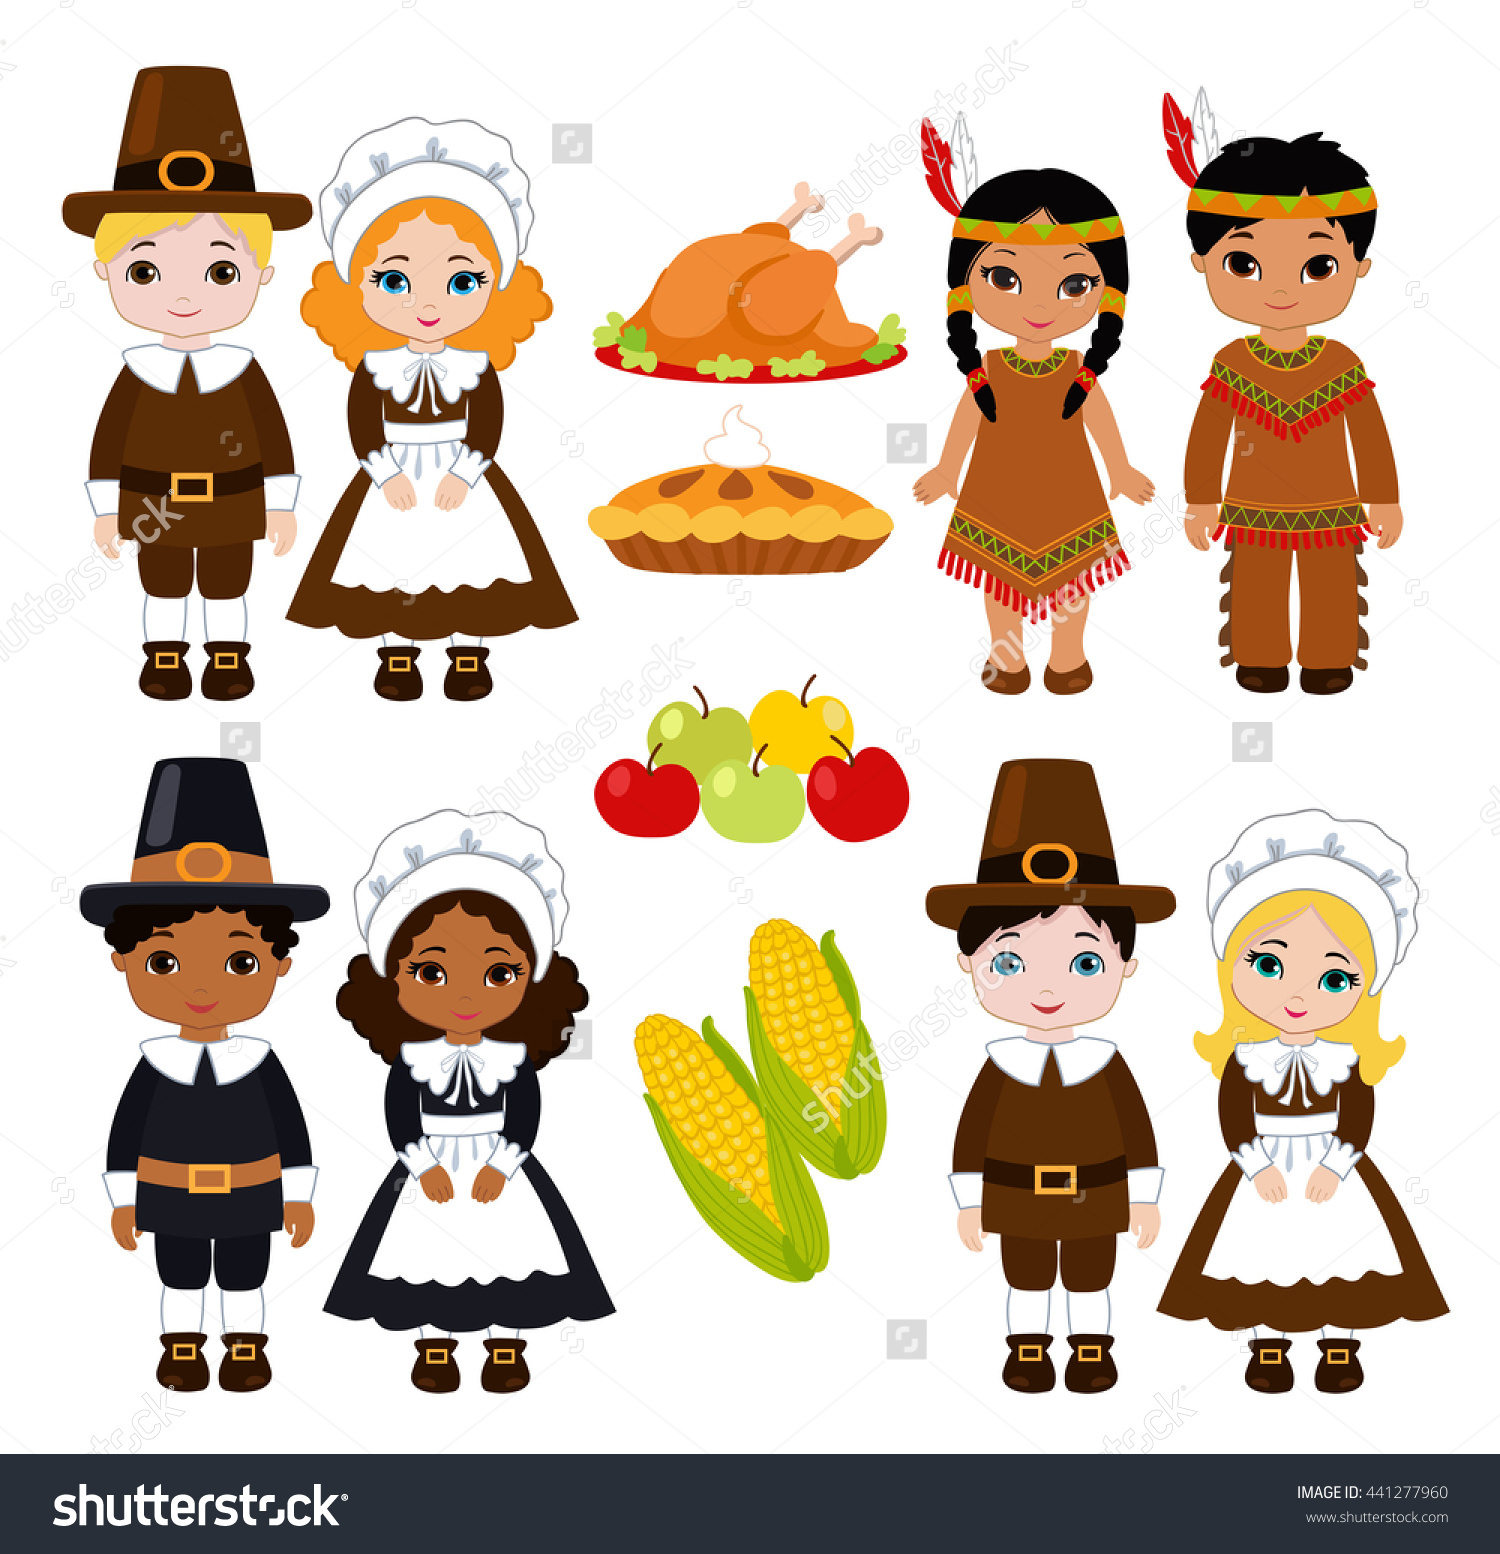 Indians clipart indian kid Food group sharing Thanksgiving sharing